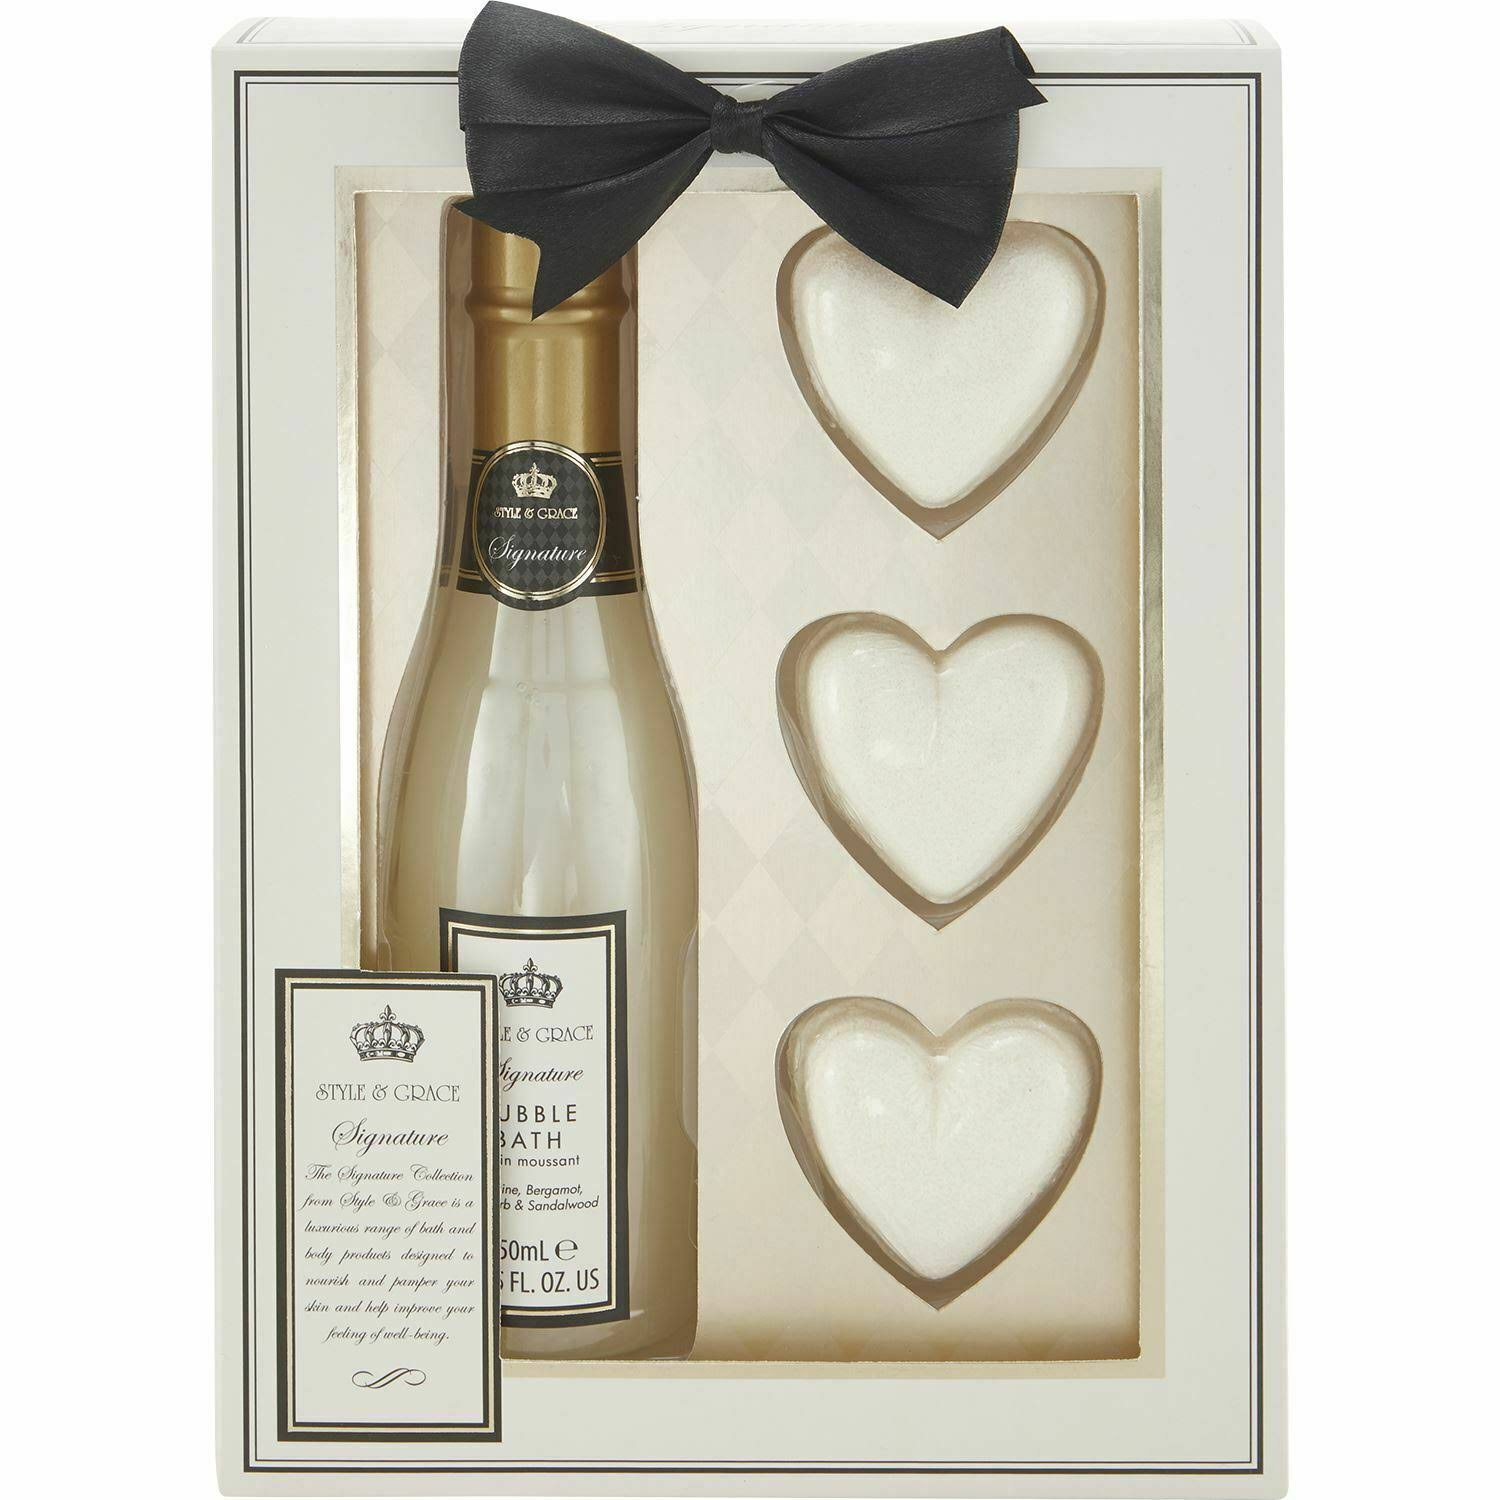 Style & Grace Signature Champagne Bath Gift Set